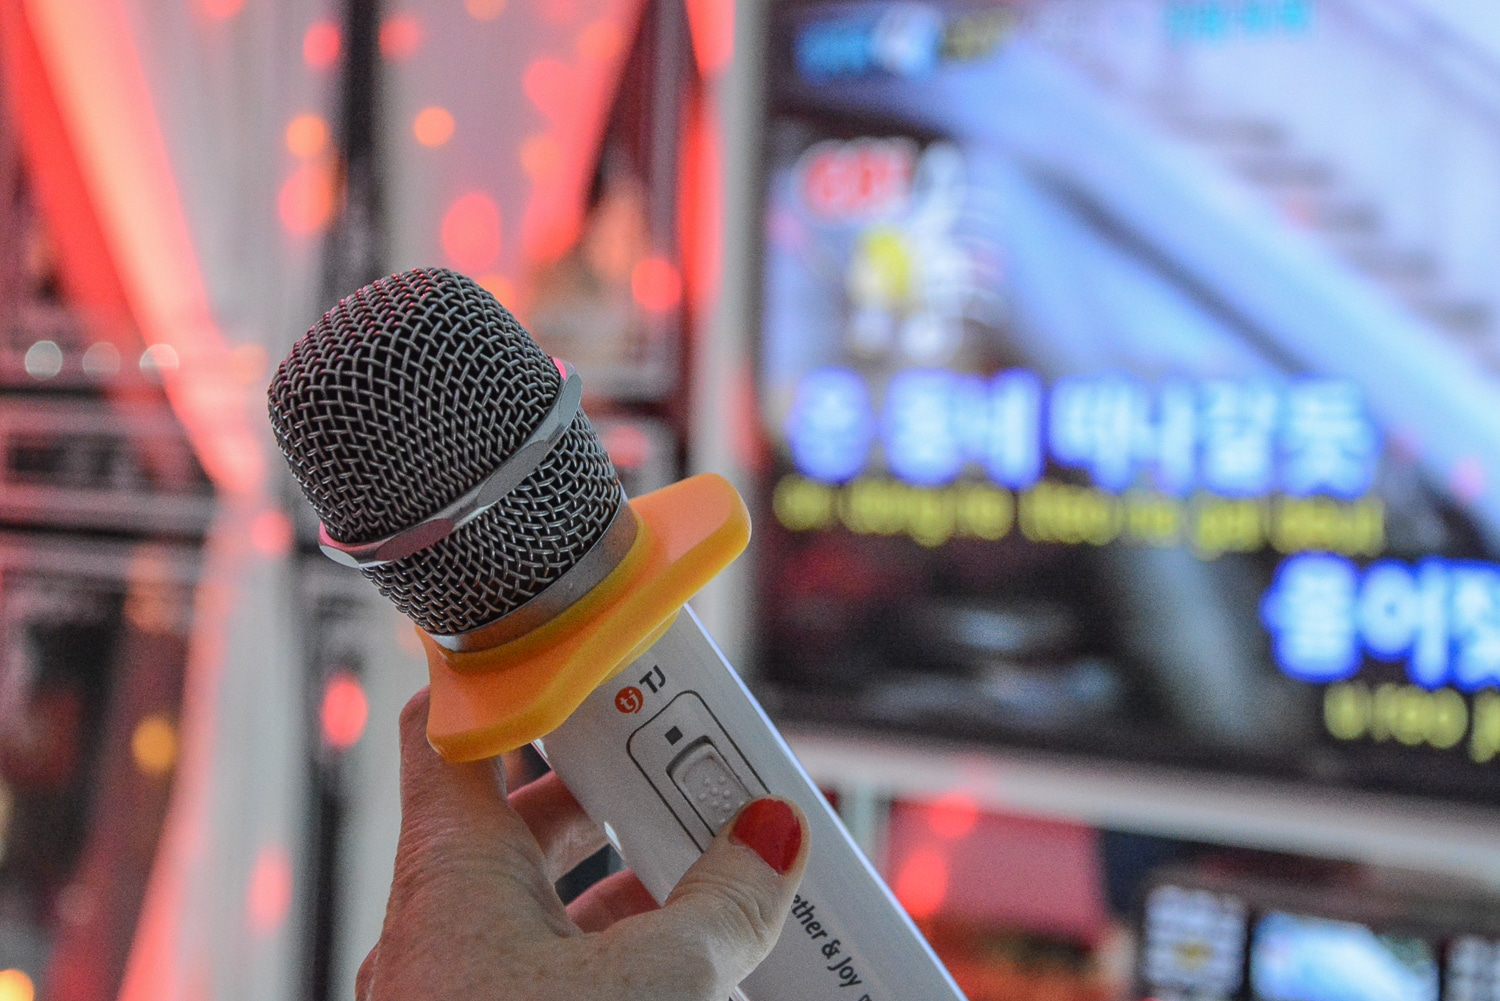 Seoul Tipps und Sightseeing in Seoul: 12 Highlights in Koreas Hauptstadt - Korean Karaoke in Noraebang